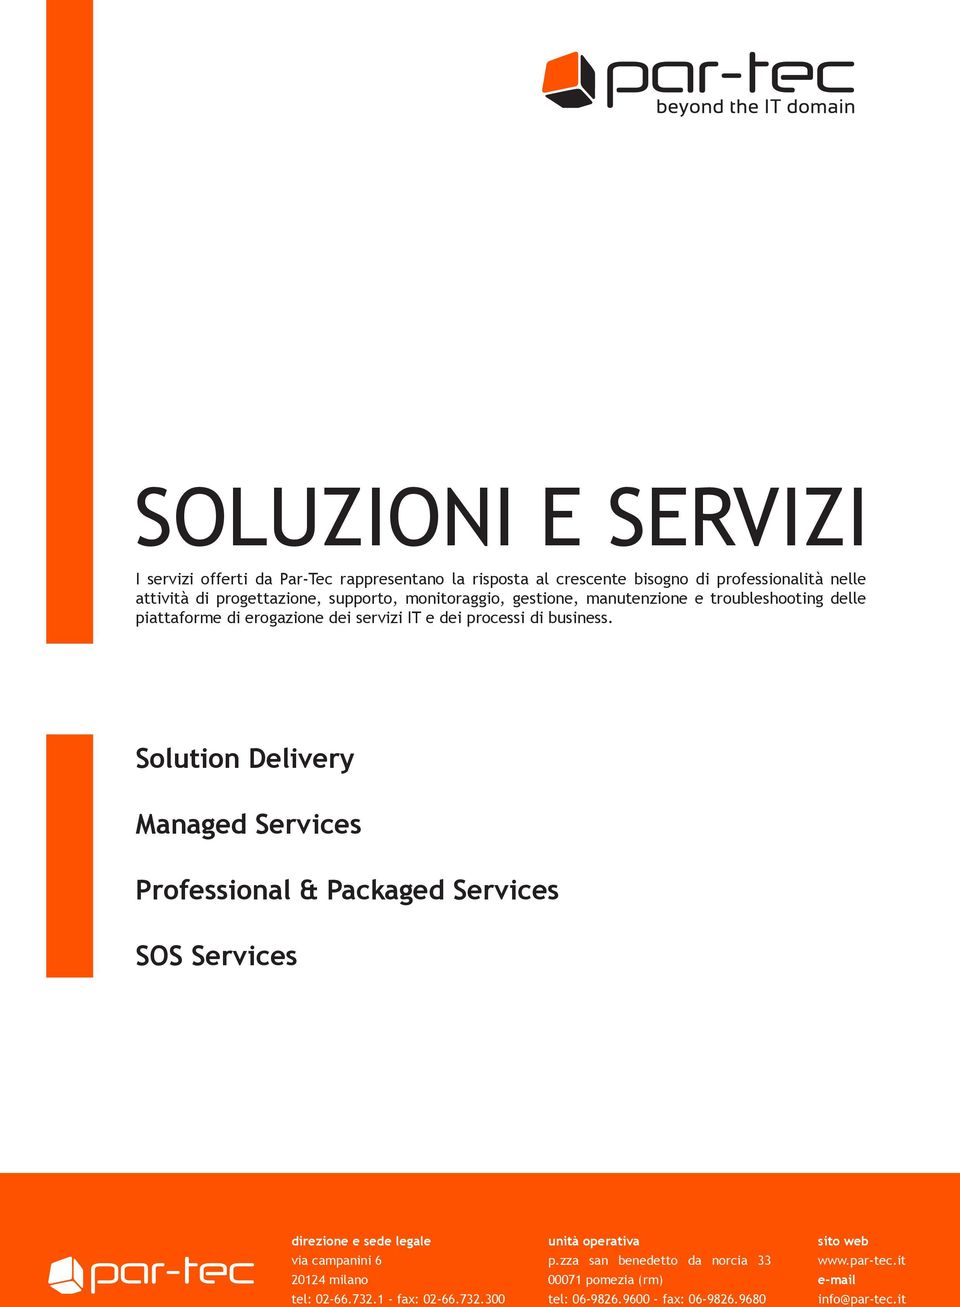 Solution Delivery anaged Services Professional & Packaged Services SOS Services direzione e sede legale via campanini 6 20124 milano tel: 02-66.732.